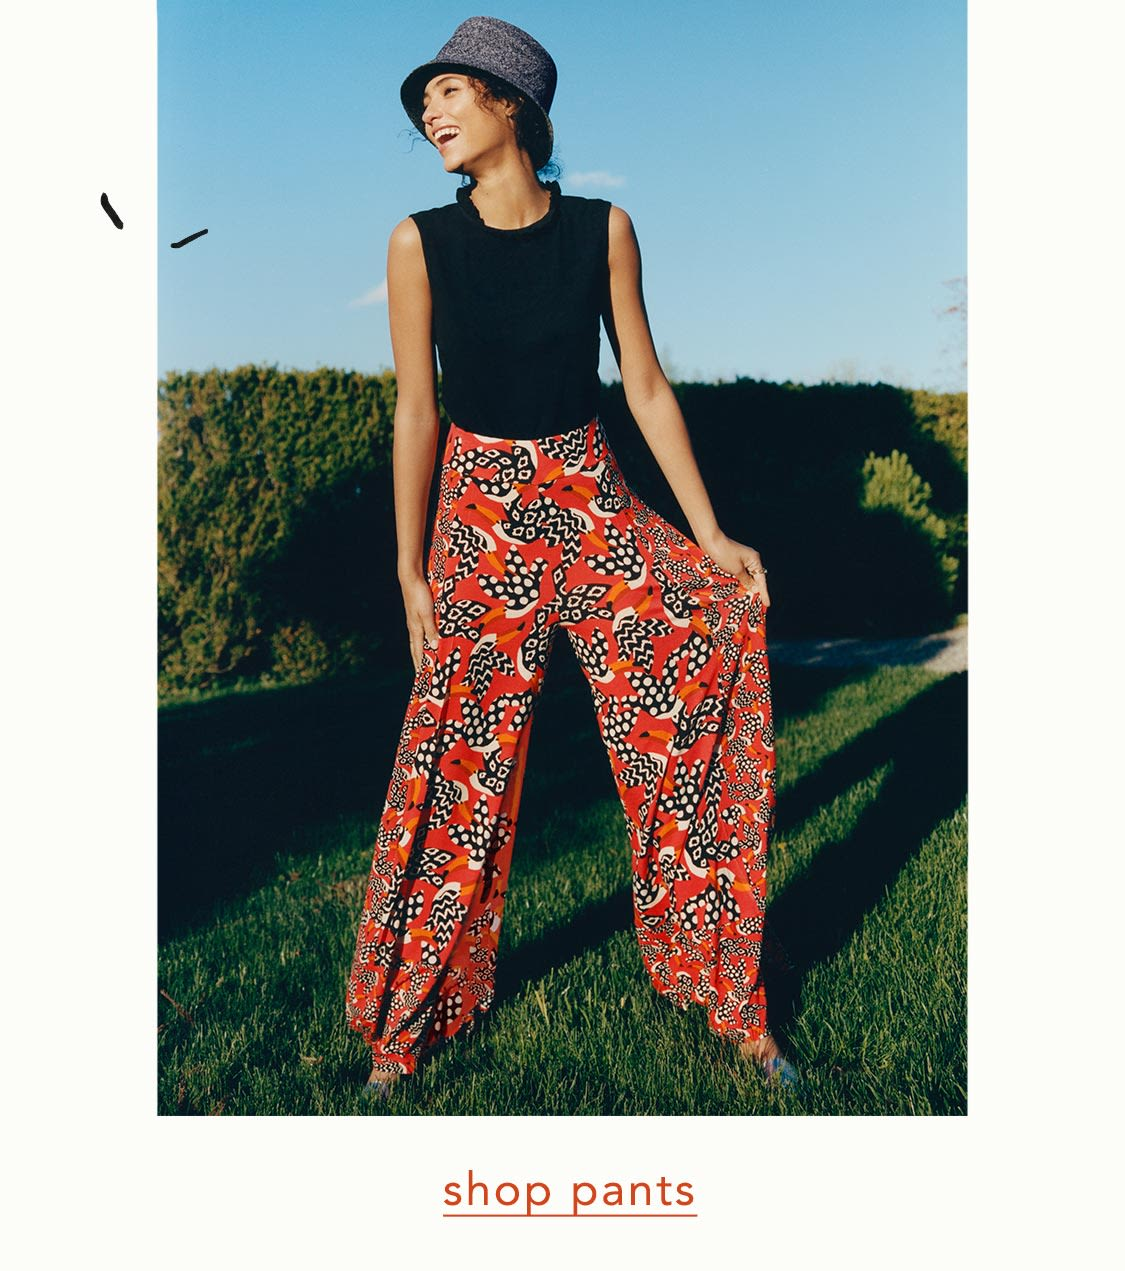 b1f877227028 Anthropologie - Women's Clothing, Accessories & Home